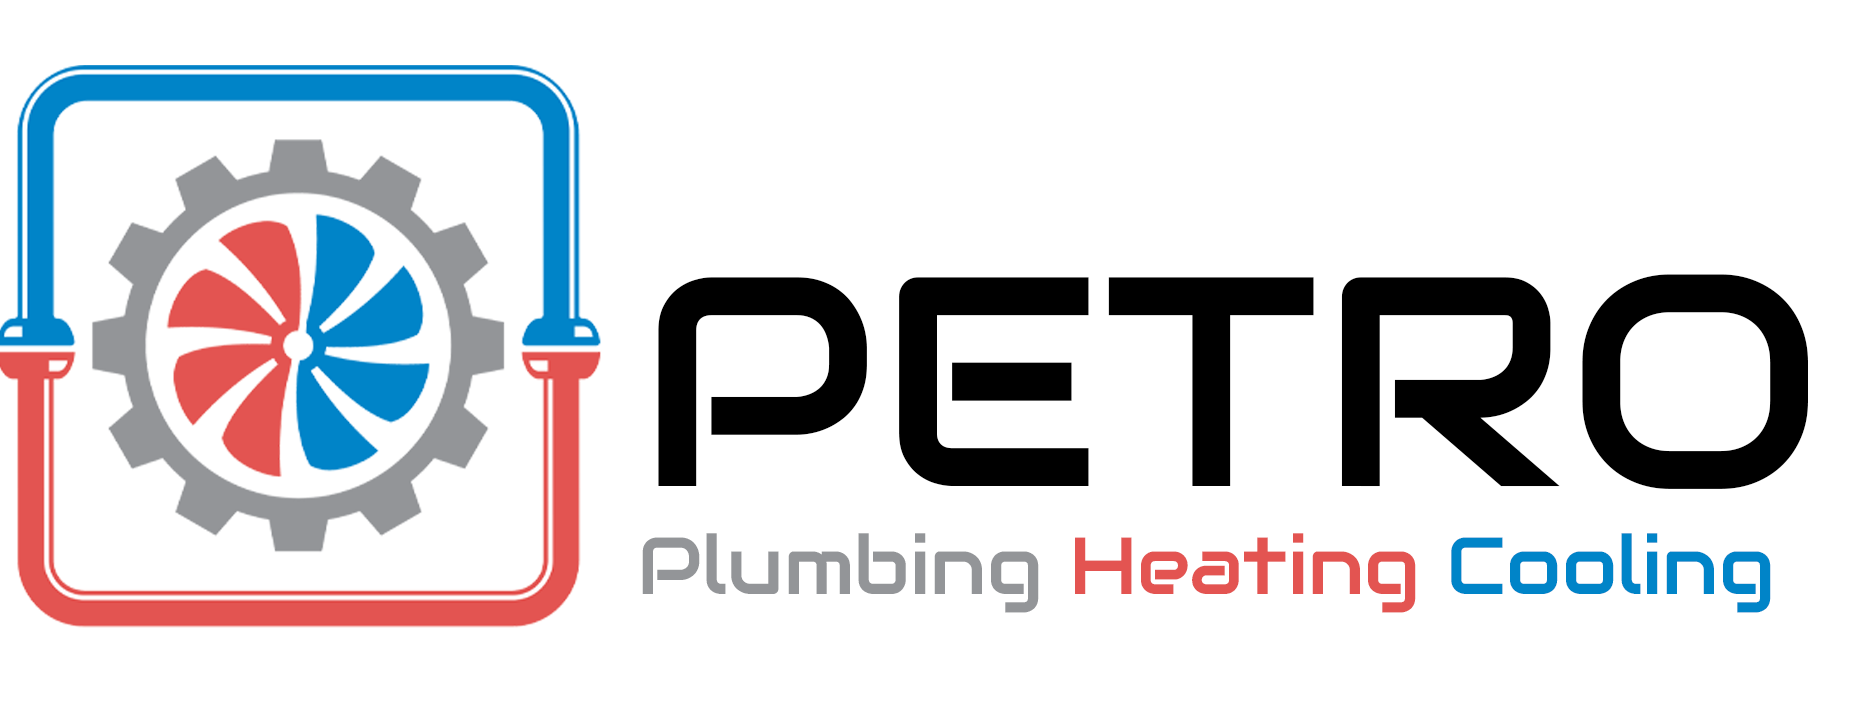 Petro Plumbing Heating Cooling